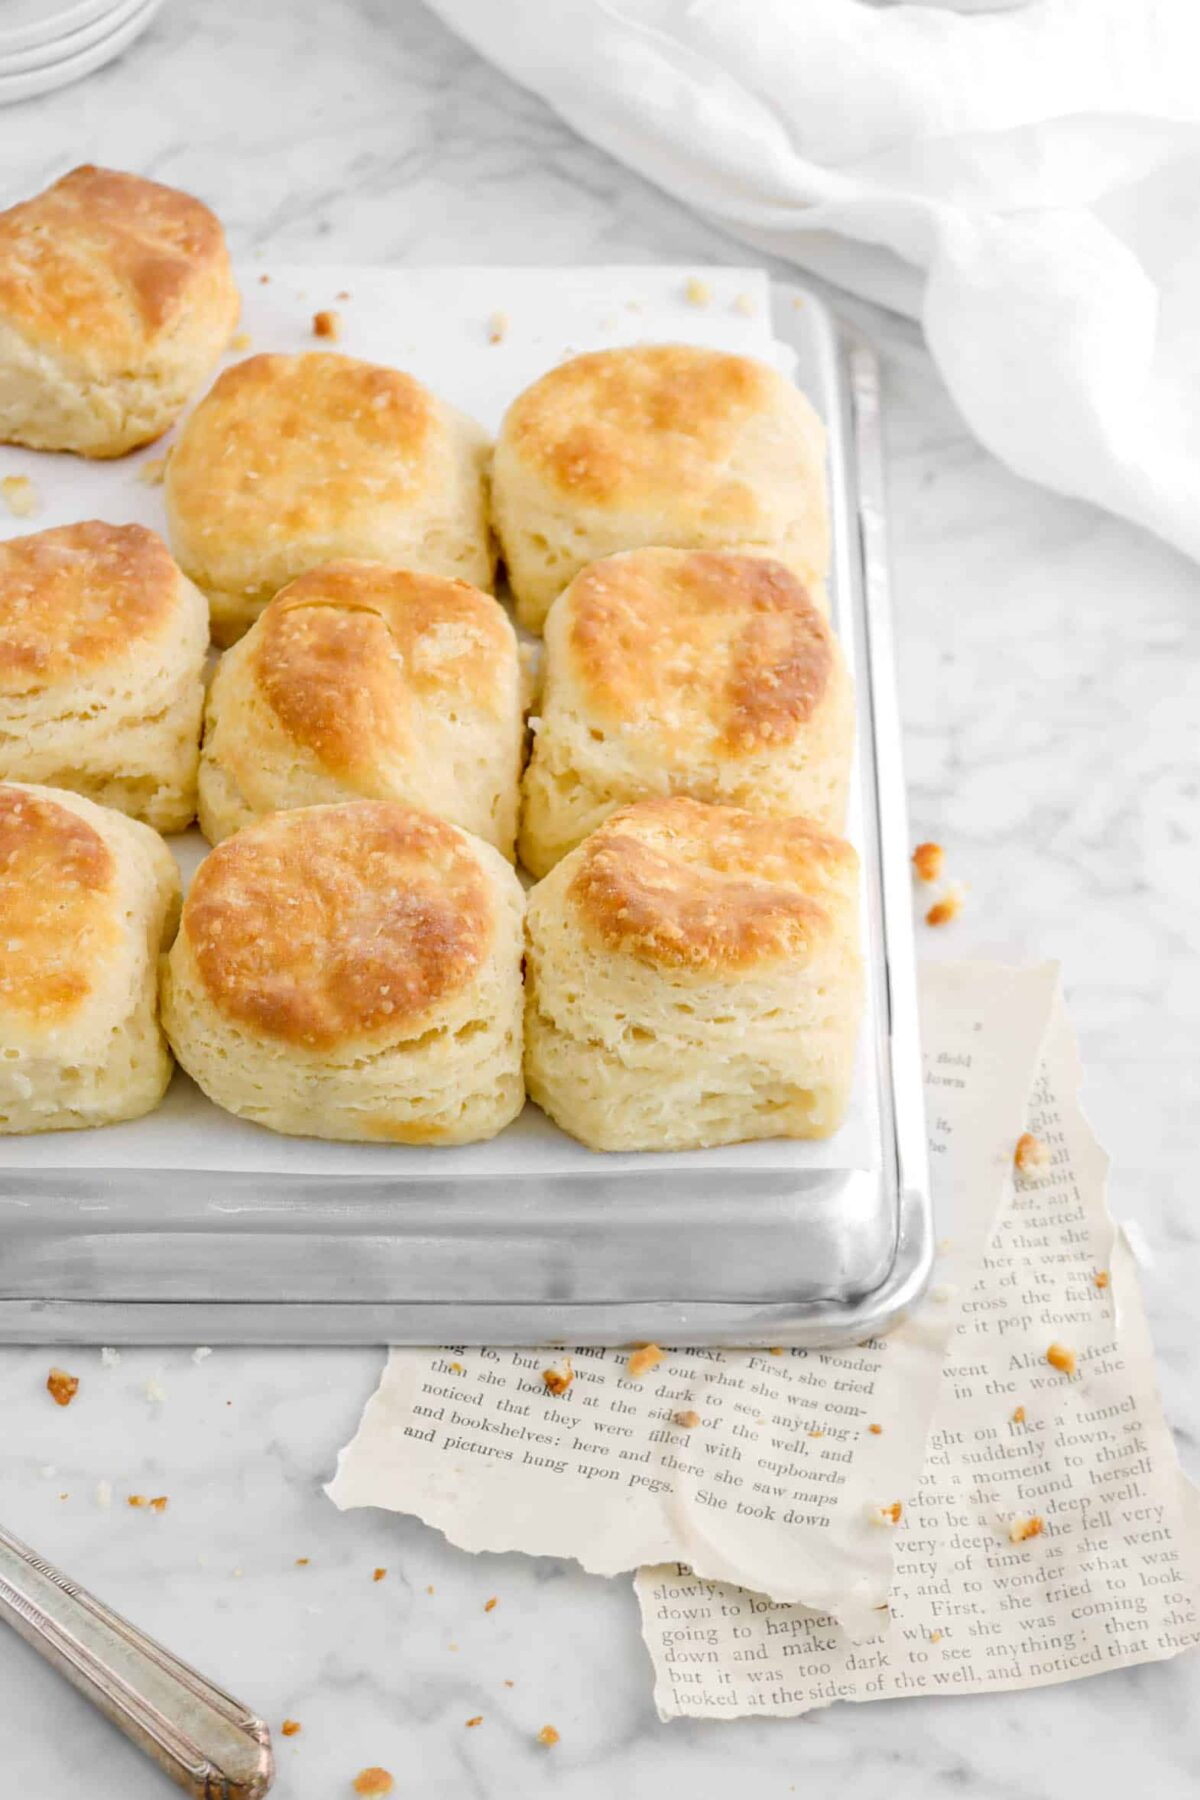 nine buttermilk biscuits on a sheet pan with book pages and white napkin